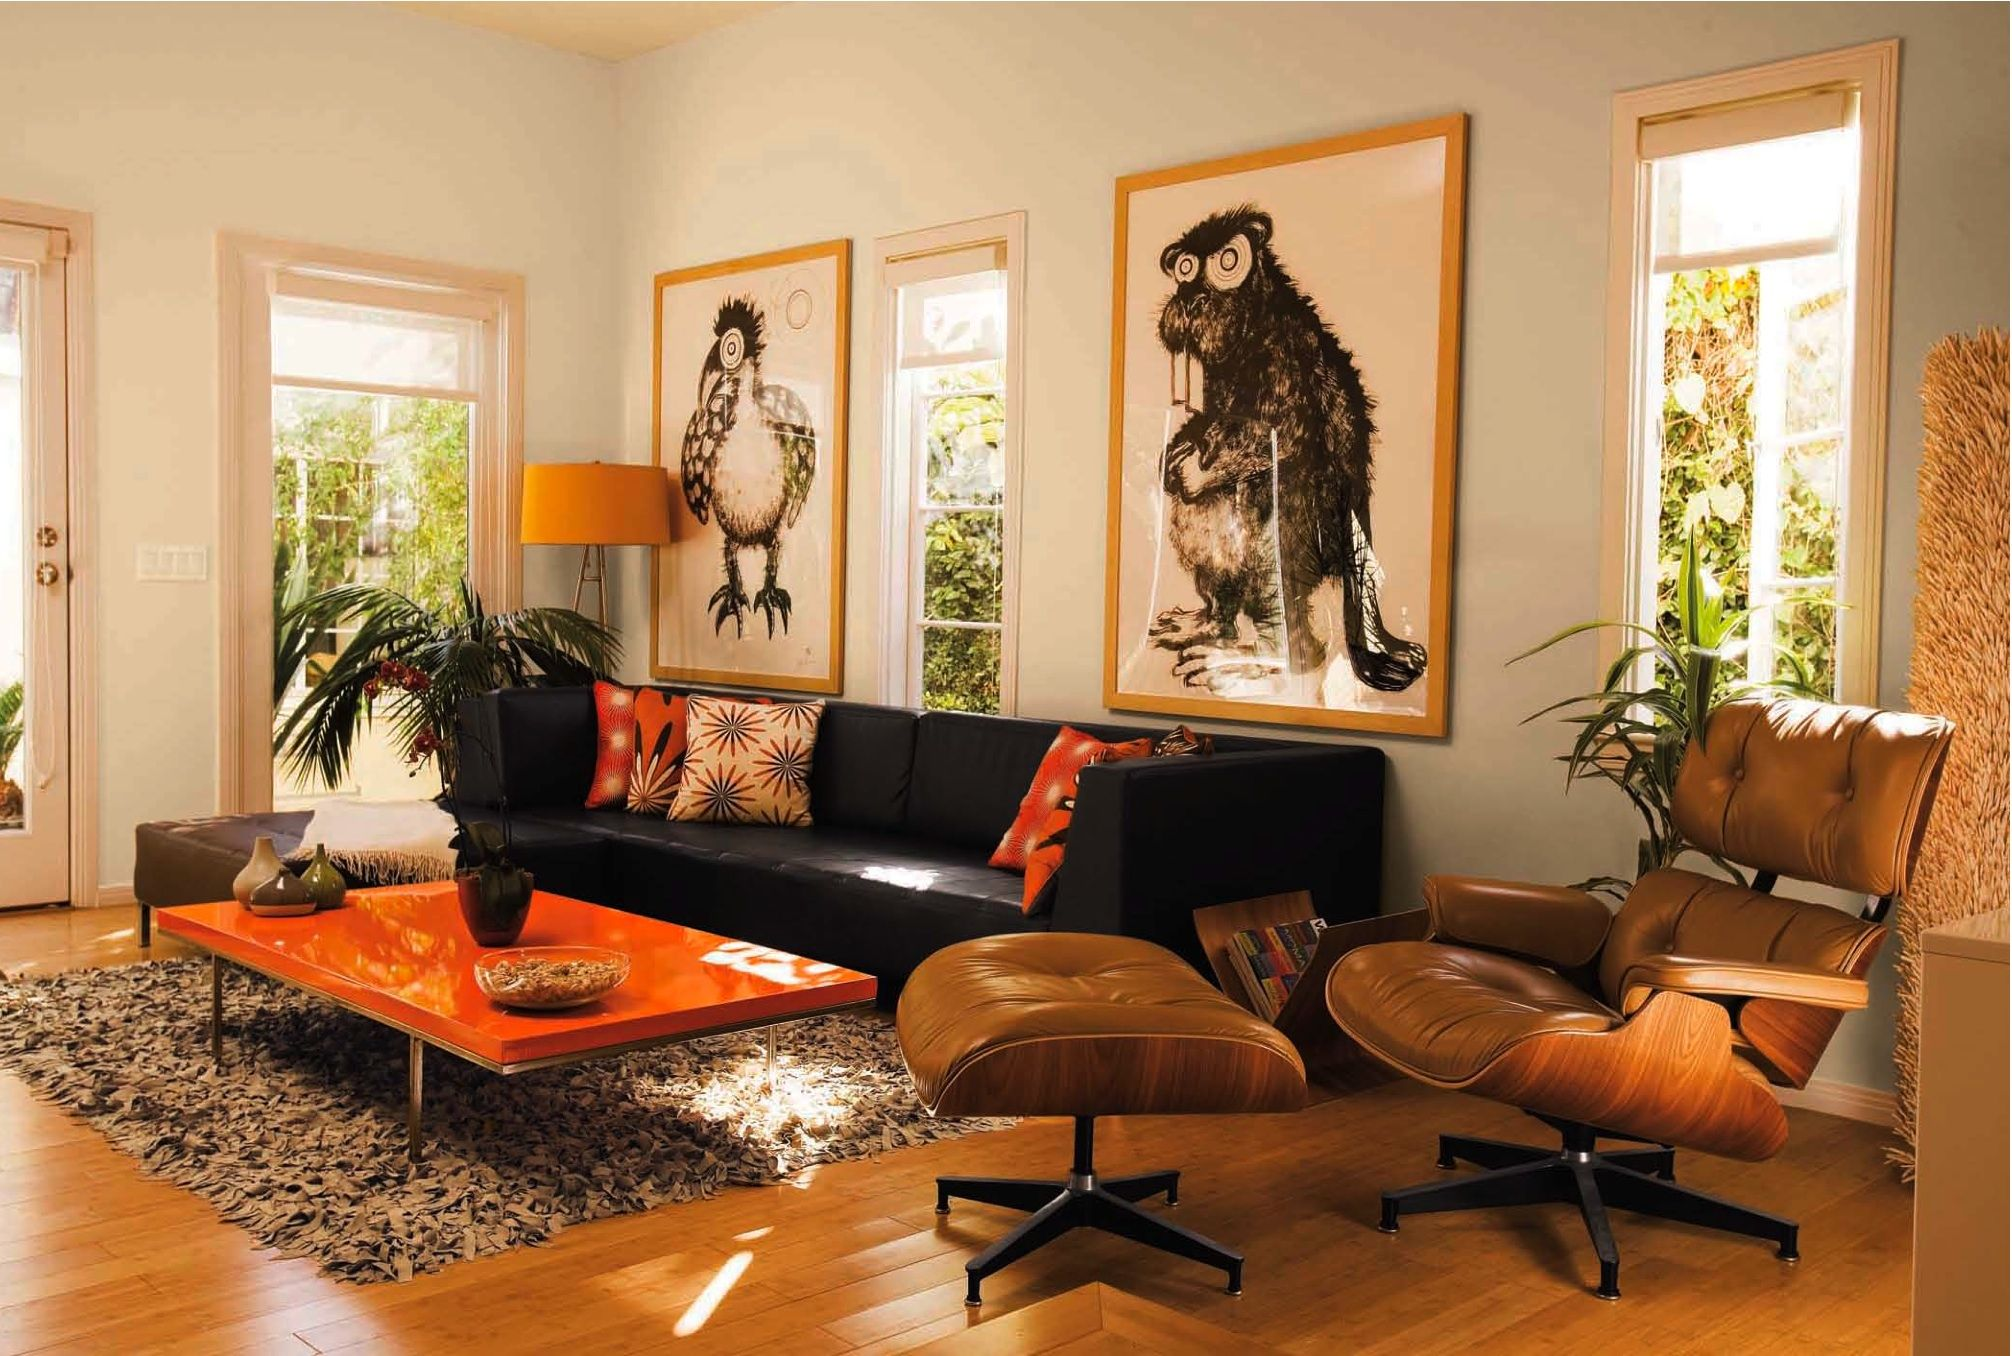 Amusing Decorating Small Living Room With Frame On The Wall Beside Glass Window As Well Orange Gloss Table Gray Rug Including Brown Lounge Chair